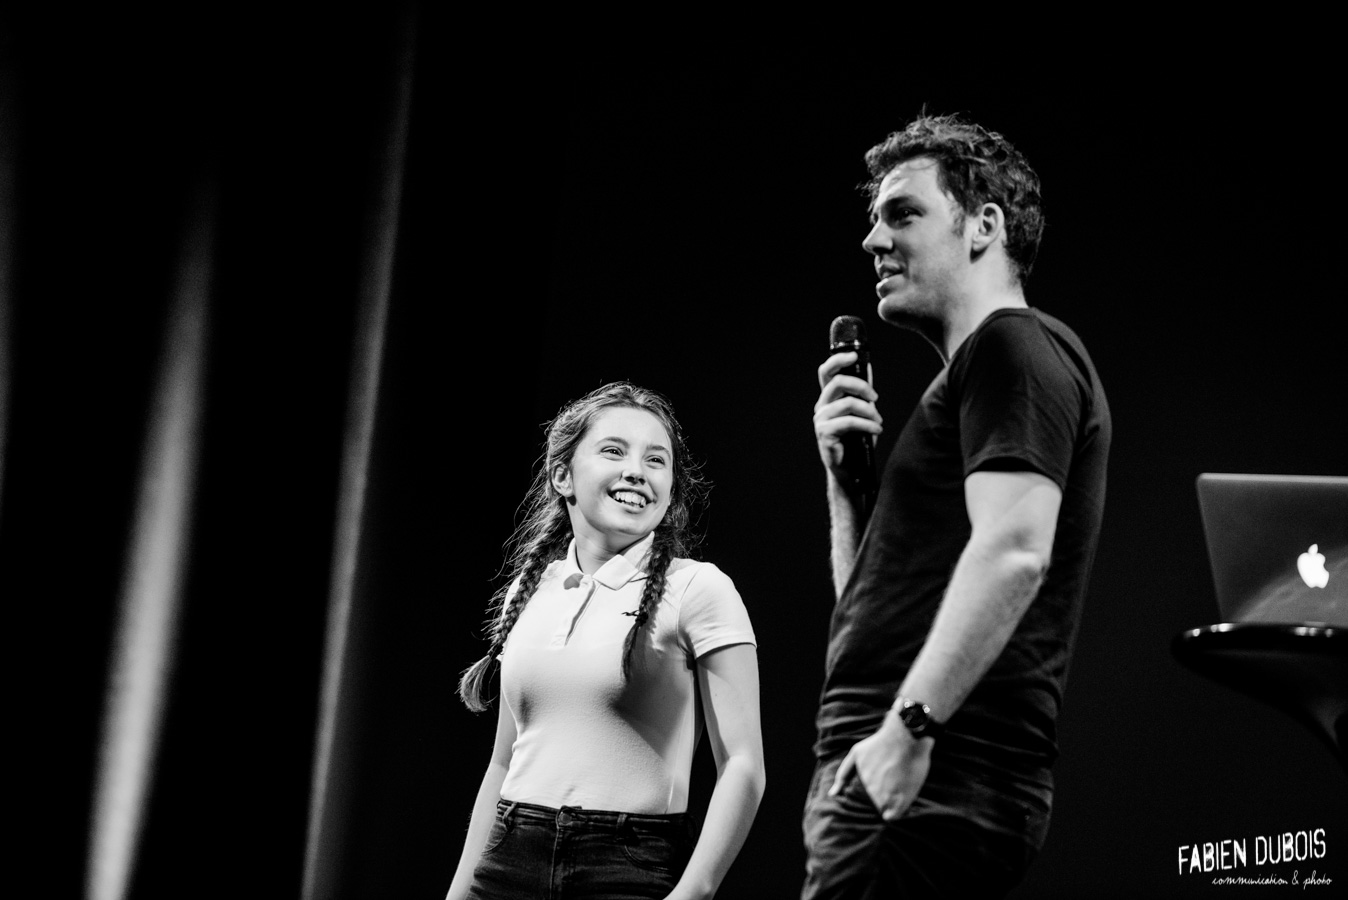 Photo Pierre Croce Powerpoint Comedy Festival Vendanges de l'Humour la Verchère Charnay les Mâcon 2017